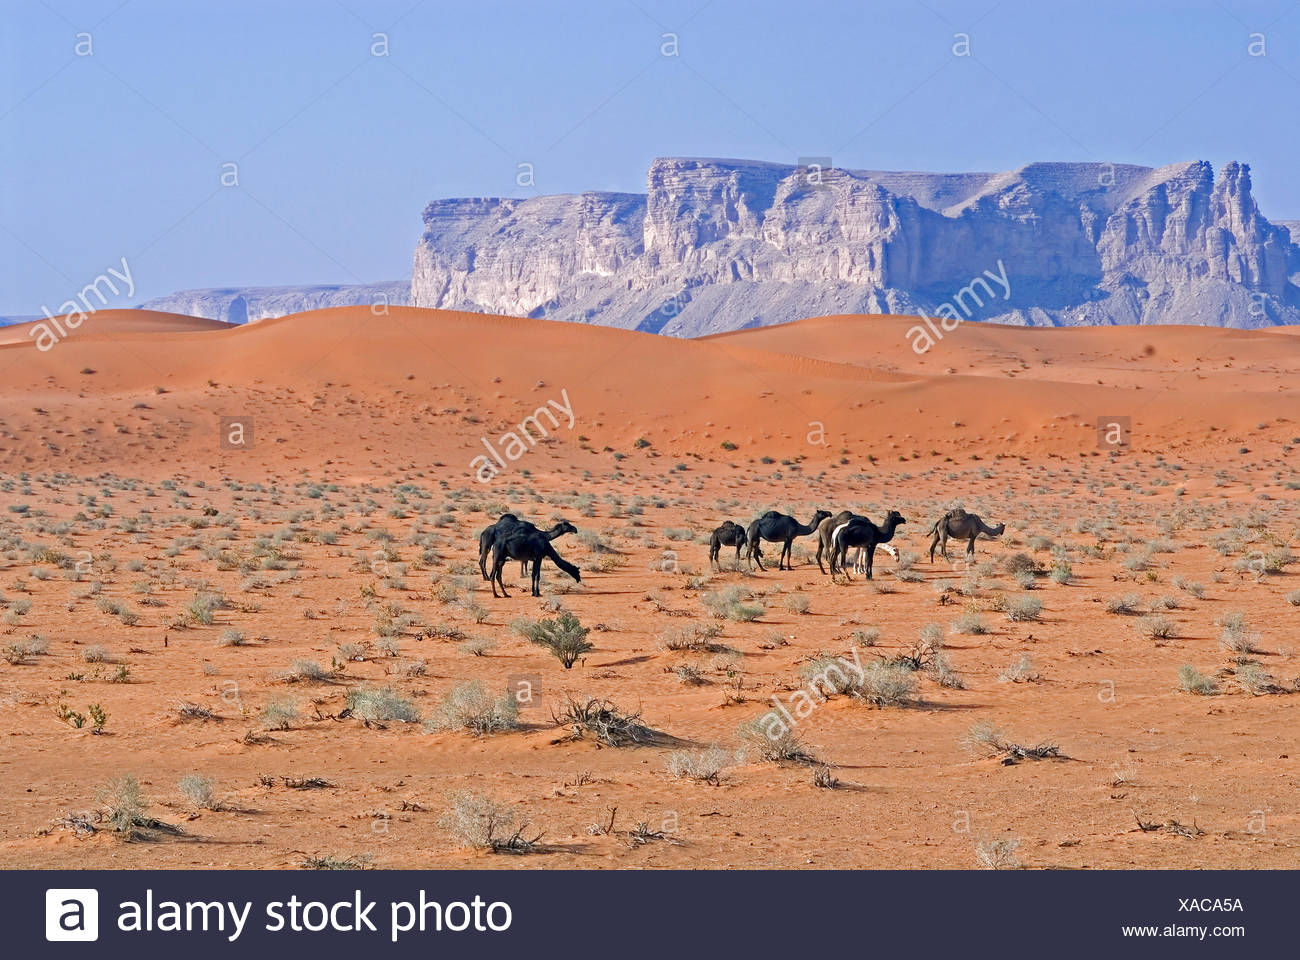 Sables Rouges,l'Arabie saoudite Photo Stock